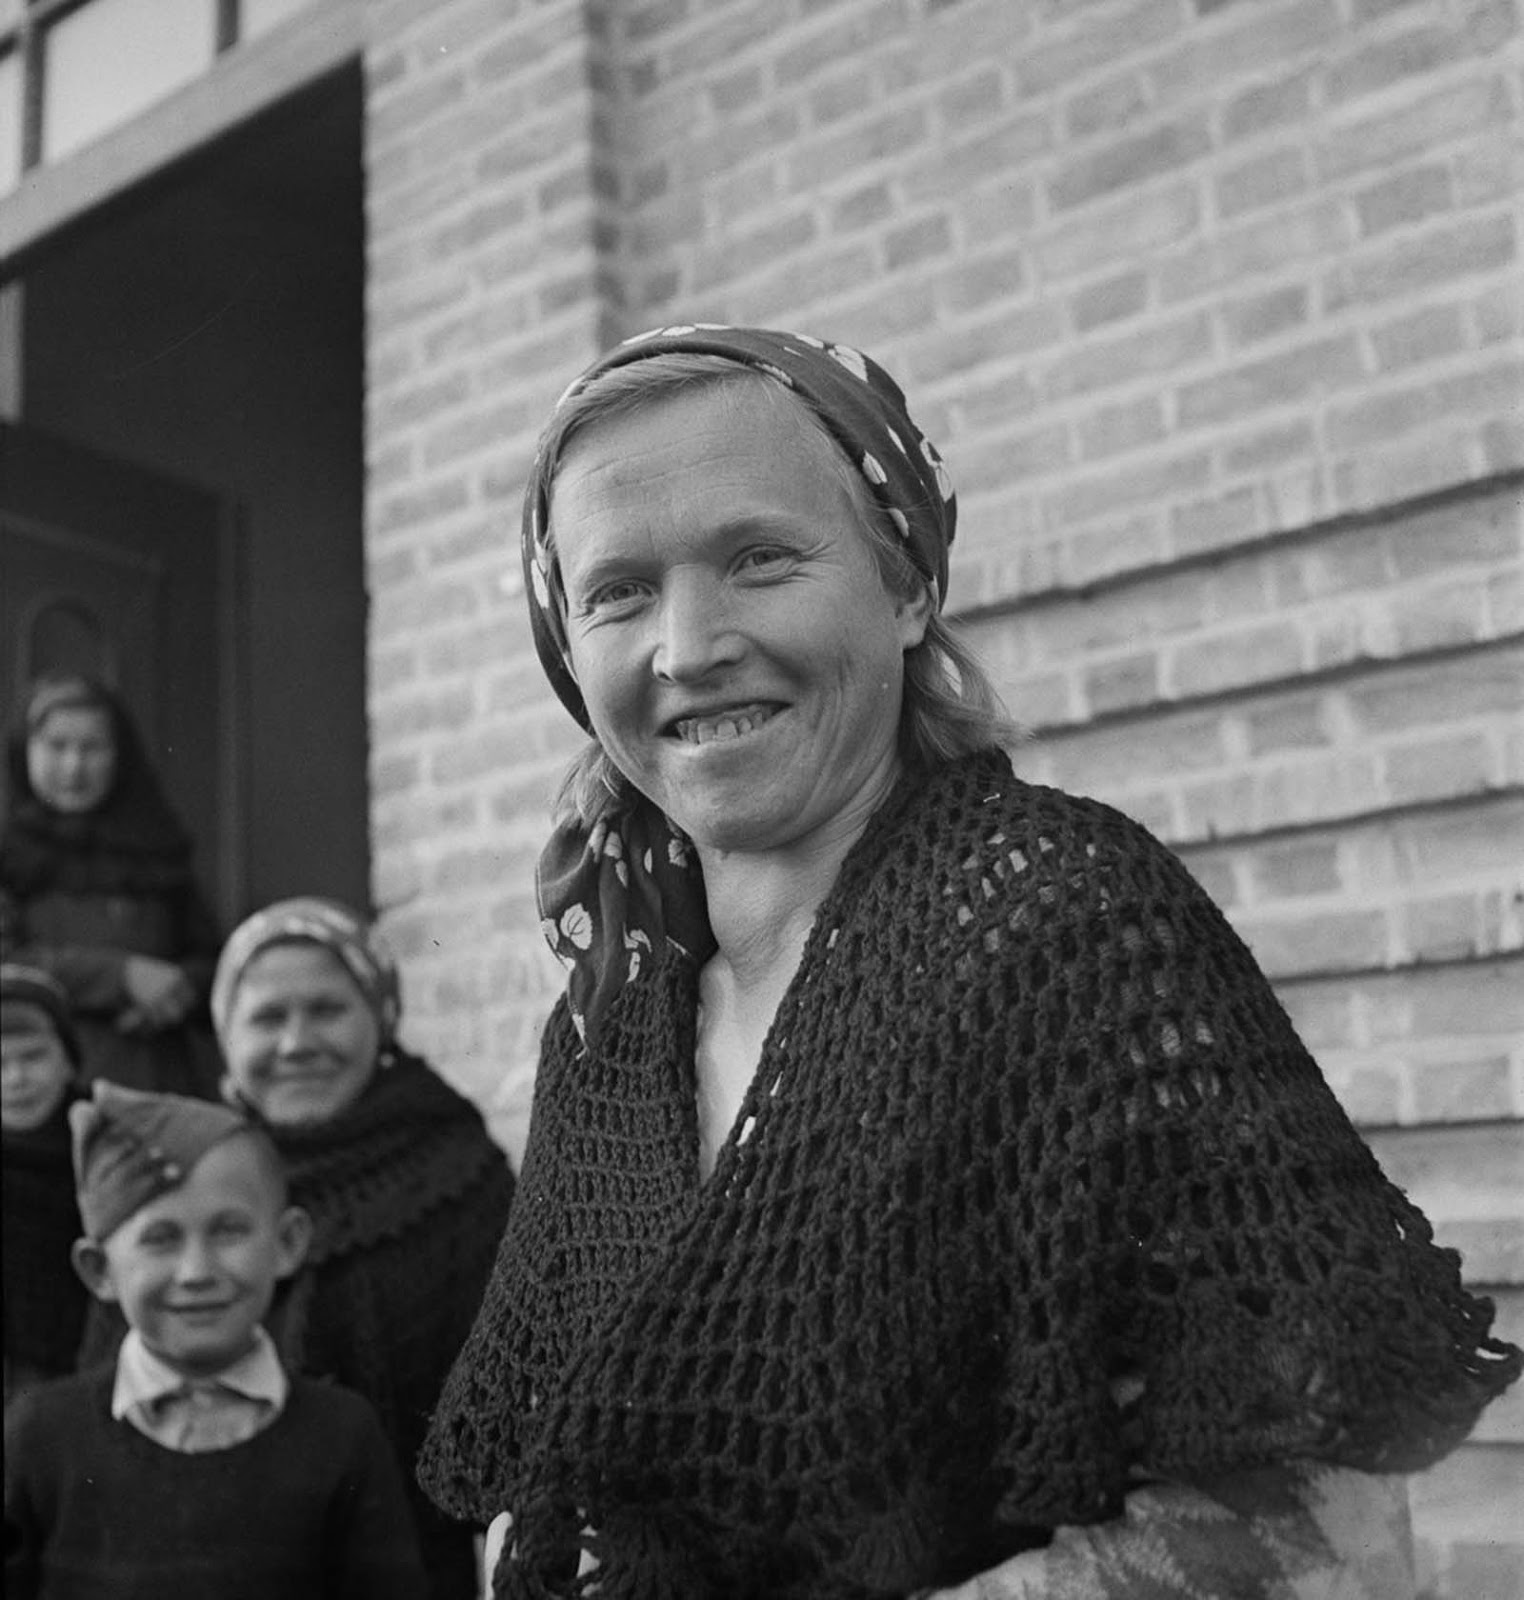 A Polish woman smiling to the camera.